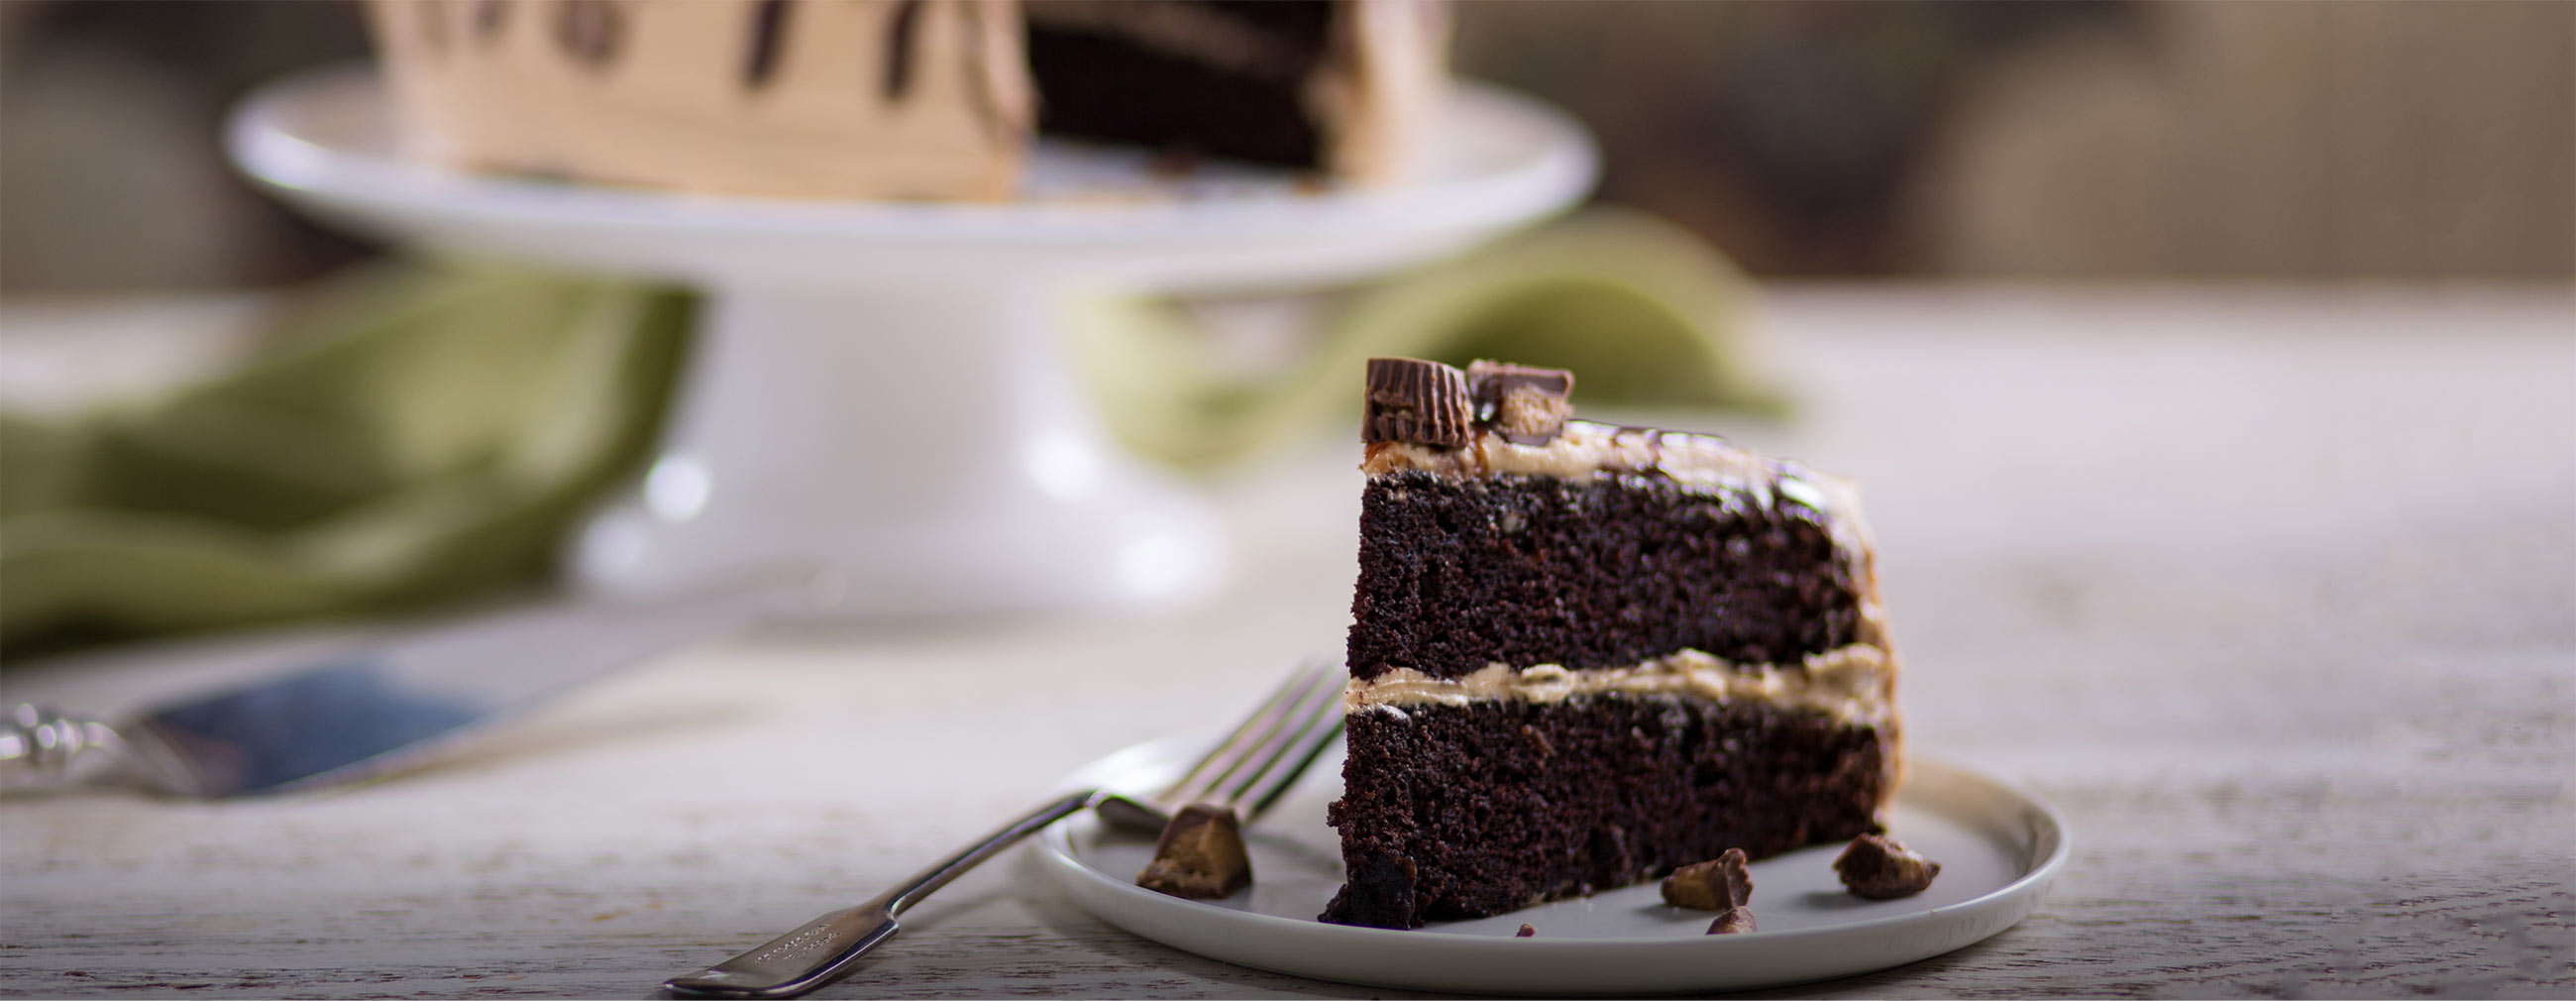 Chocolate Cake with Whipped Peanut Butter Frosting